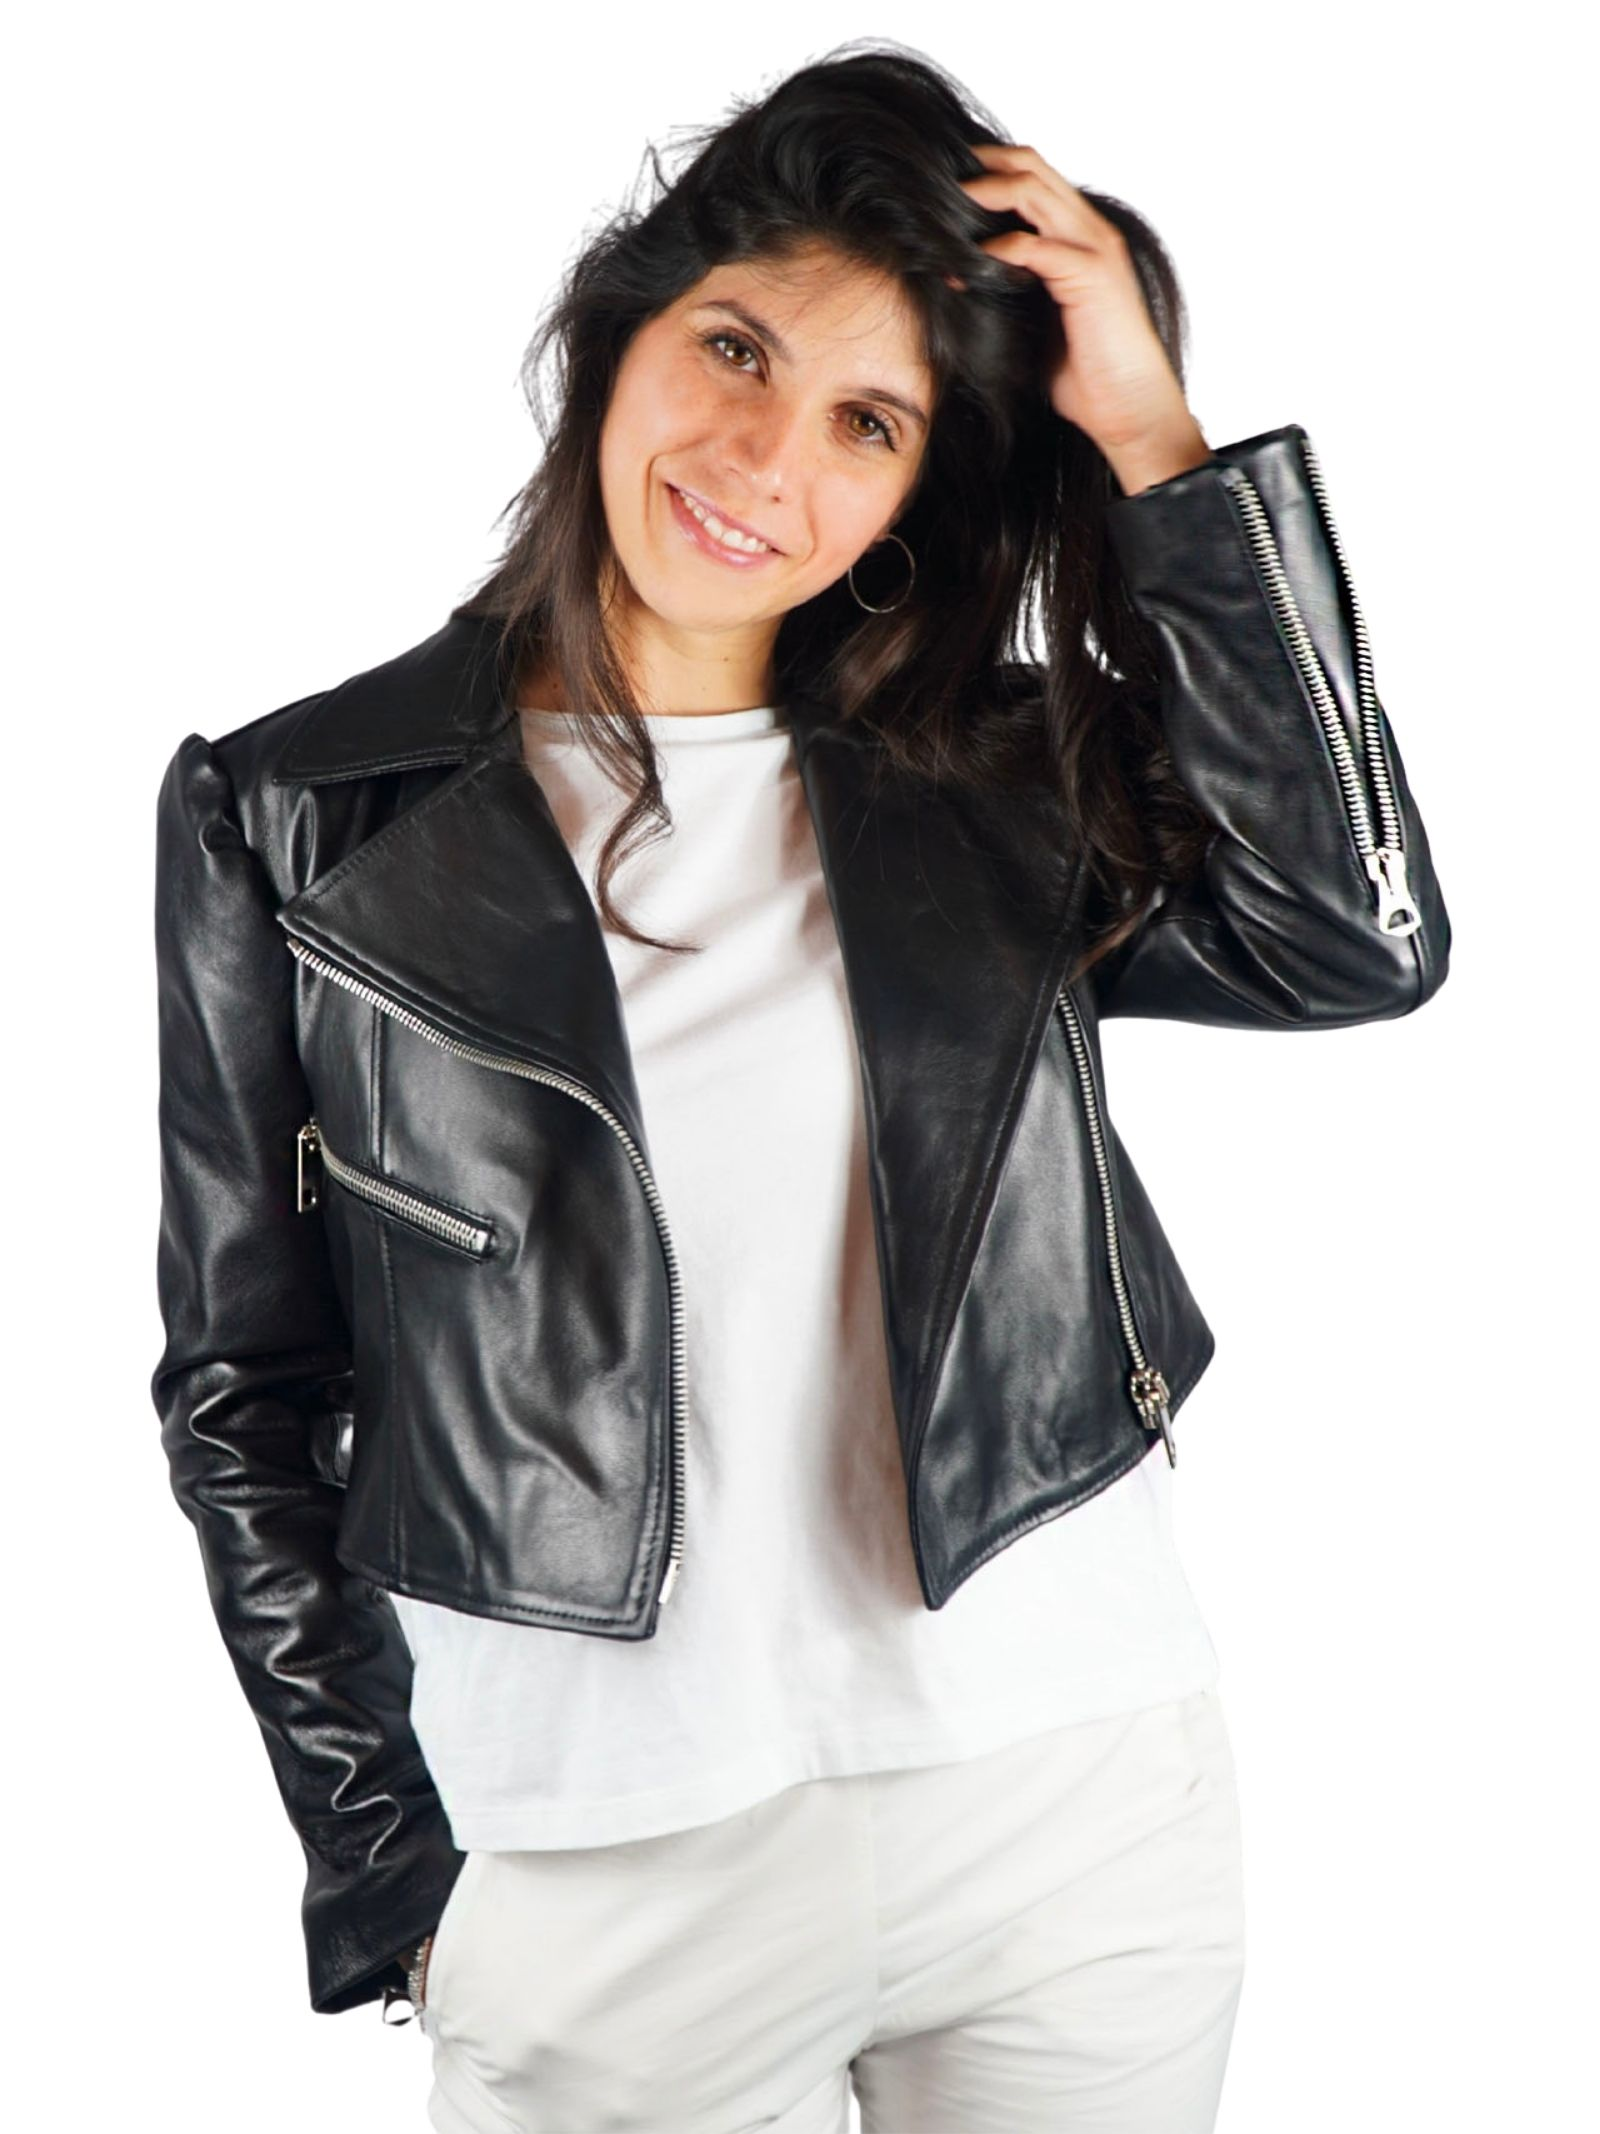 Women's Clothing Chiodo in Black Short Leather with Zip Spatarella |  | 2160001